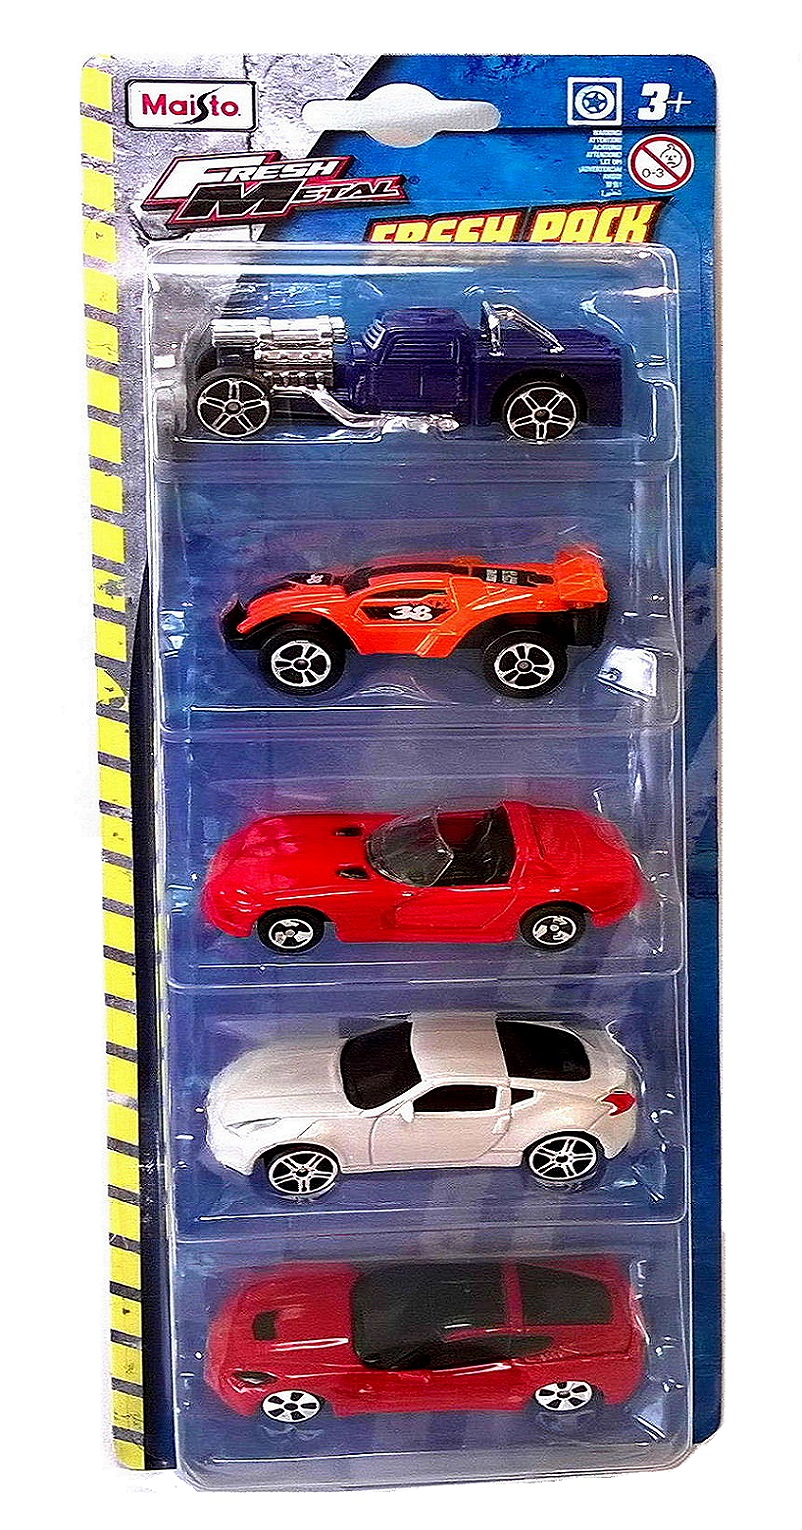 5 x CAR FRESH METAL PLAYSET - 1:64 Die-cast Model Cars by Maisto